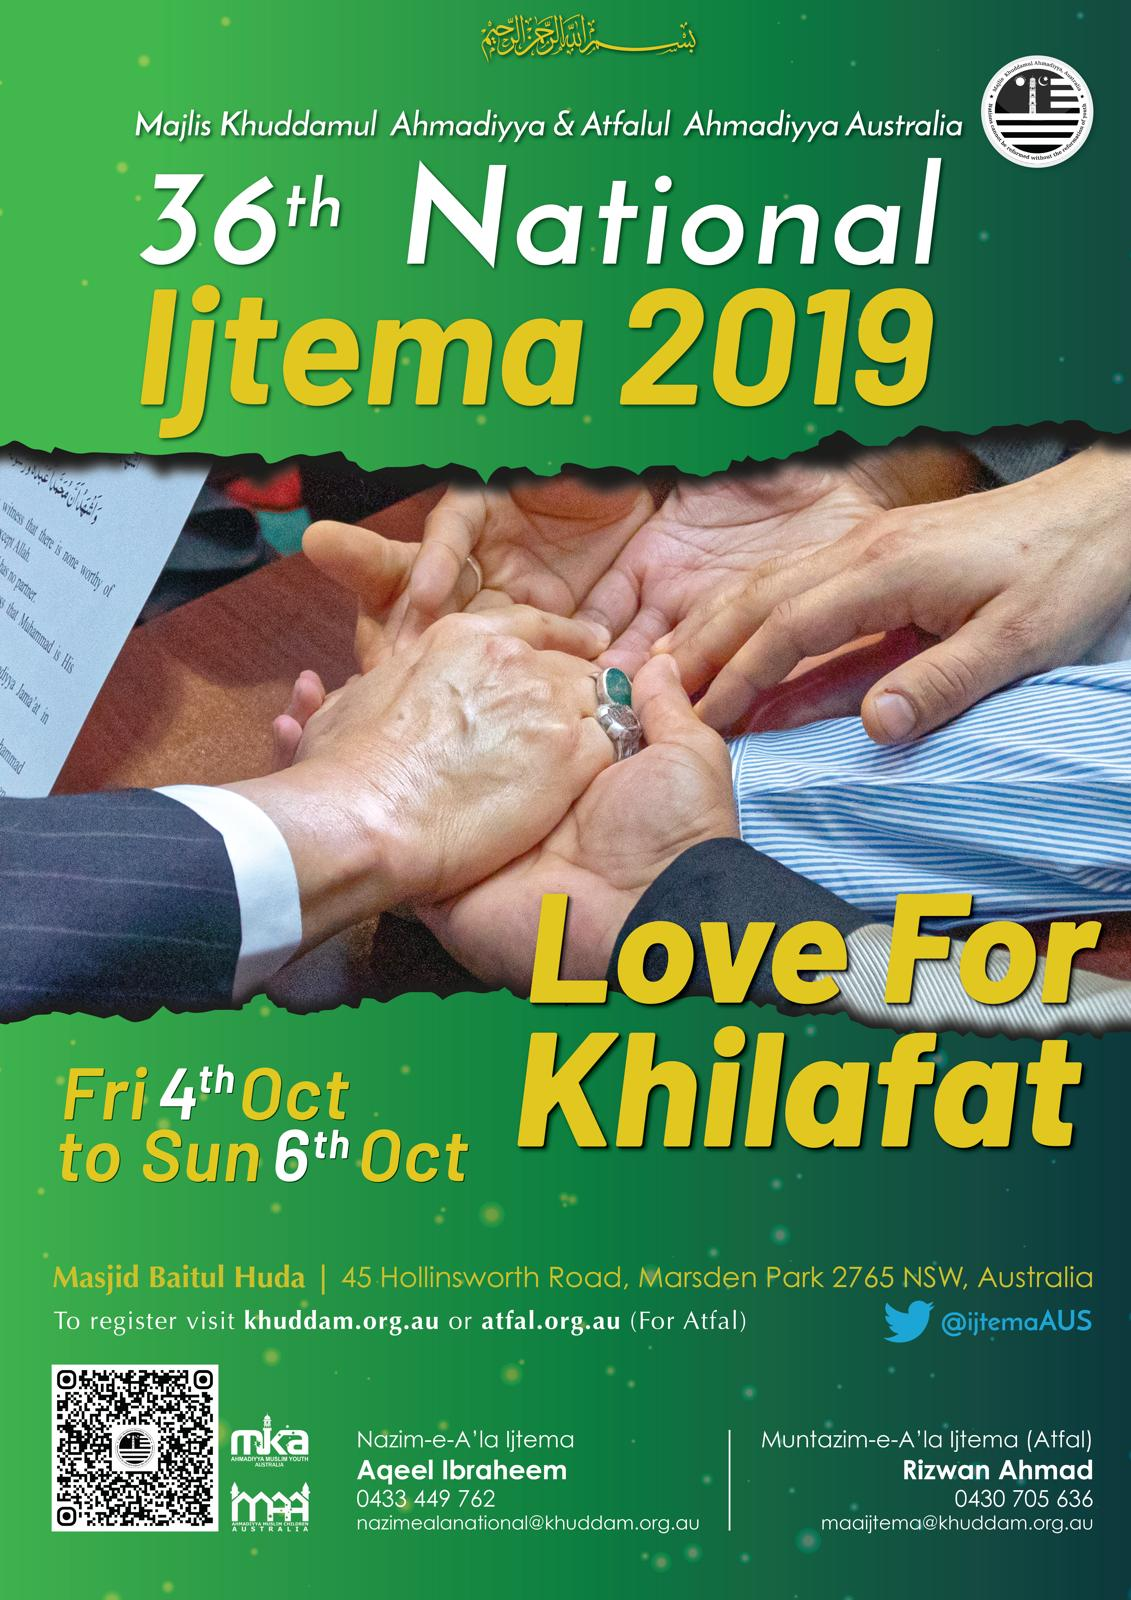 36 National Ijtema 2019